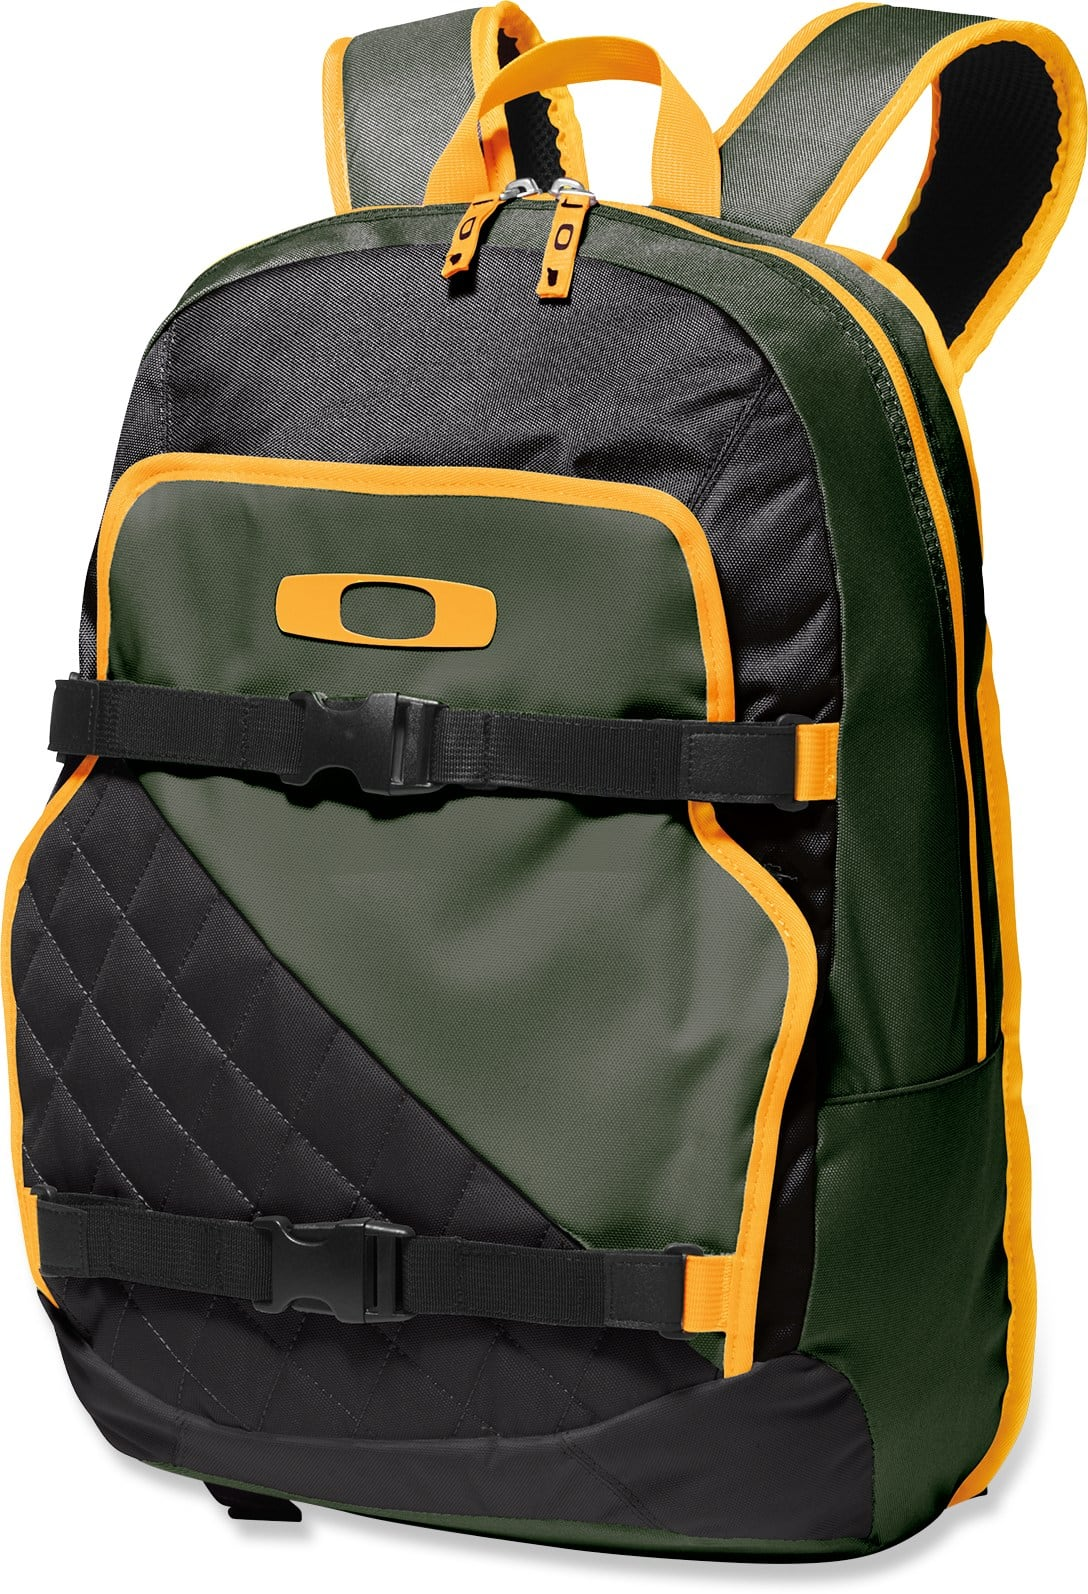 green and black backpack